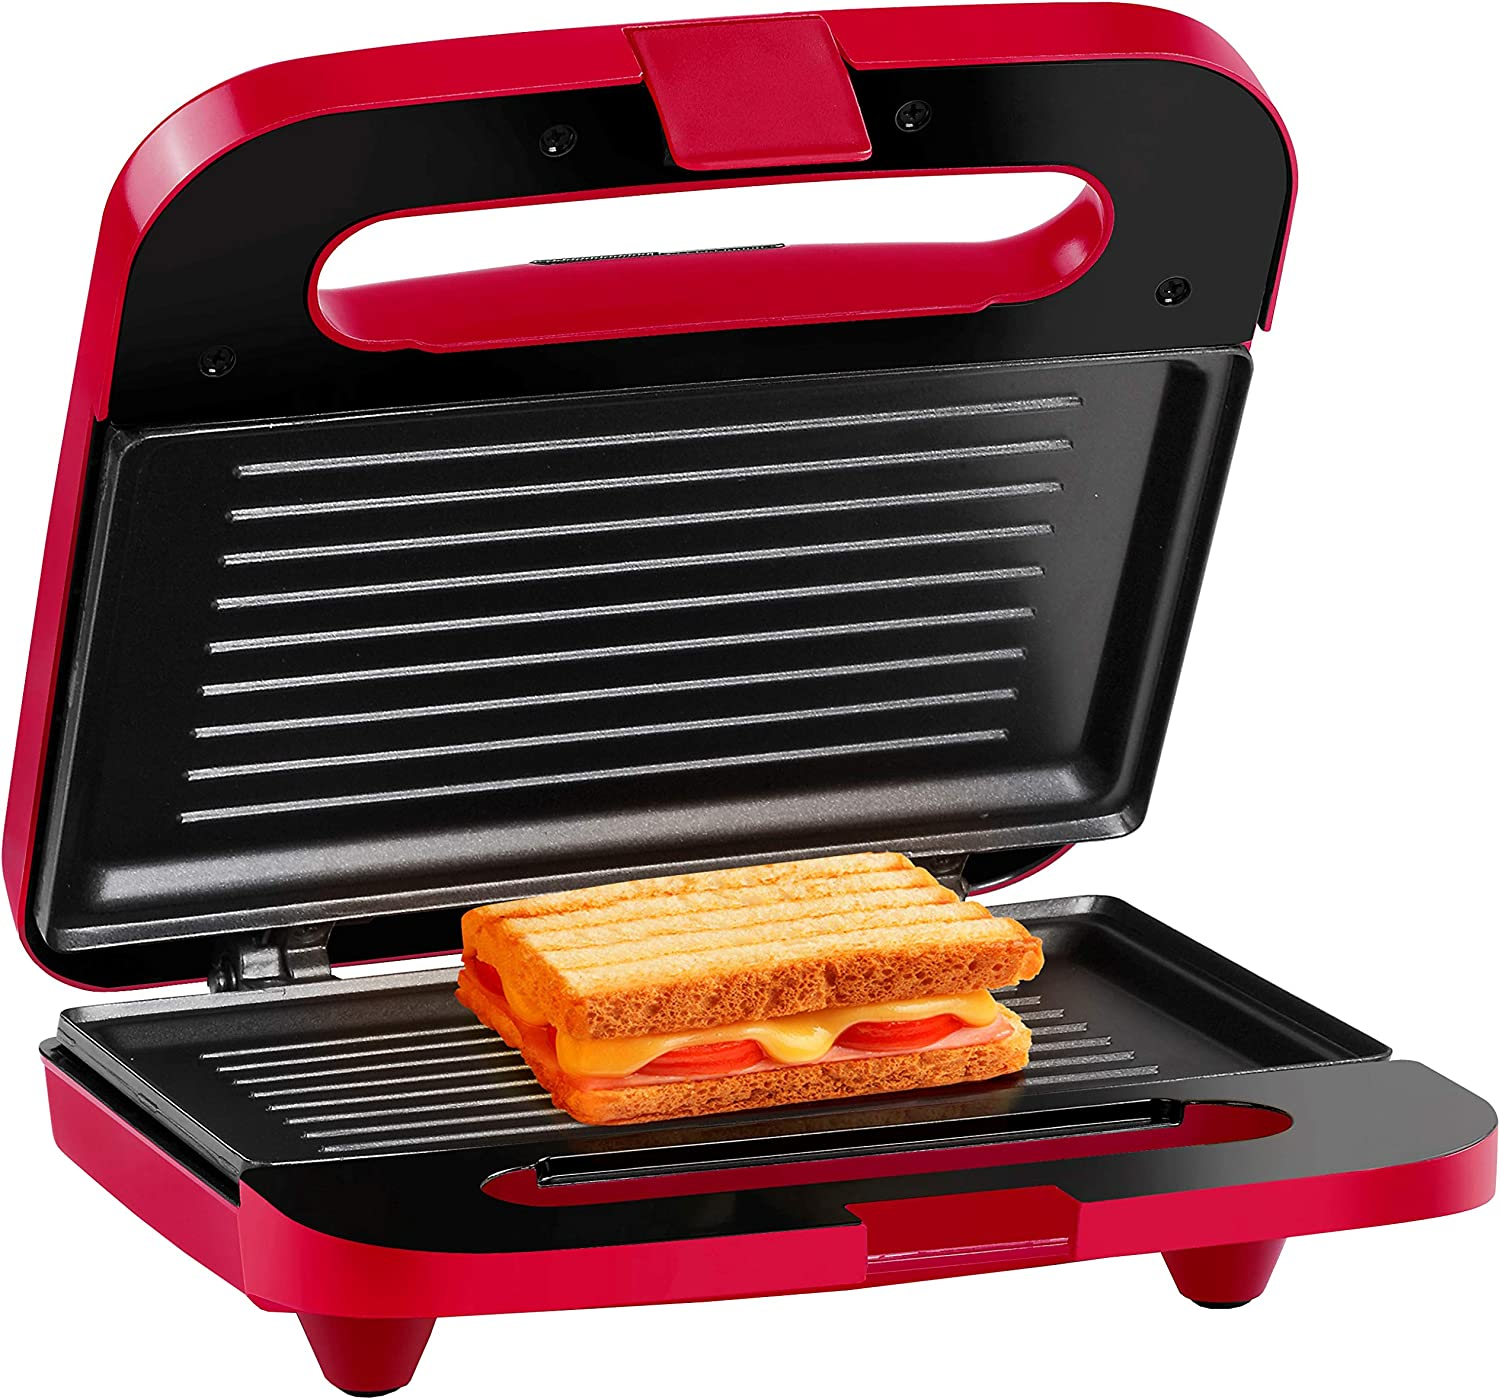 Holstein Housewares HH-09125003R Maker 2-Slice Electric Sandwich Grill Press, Red